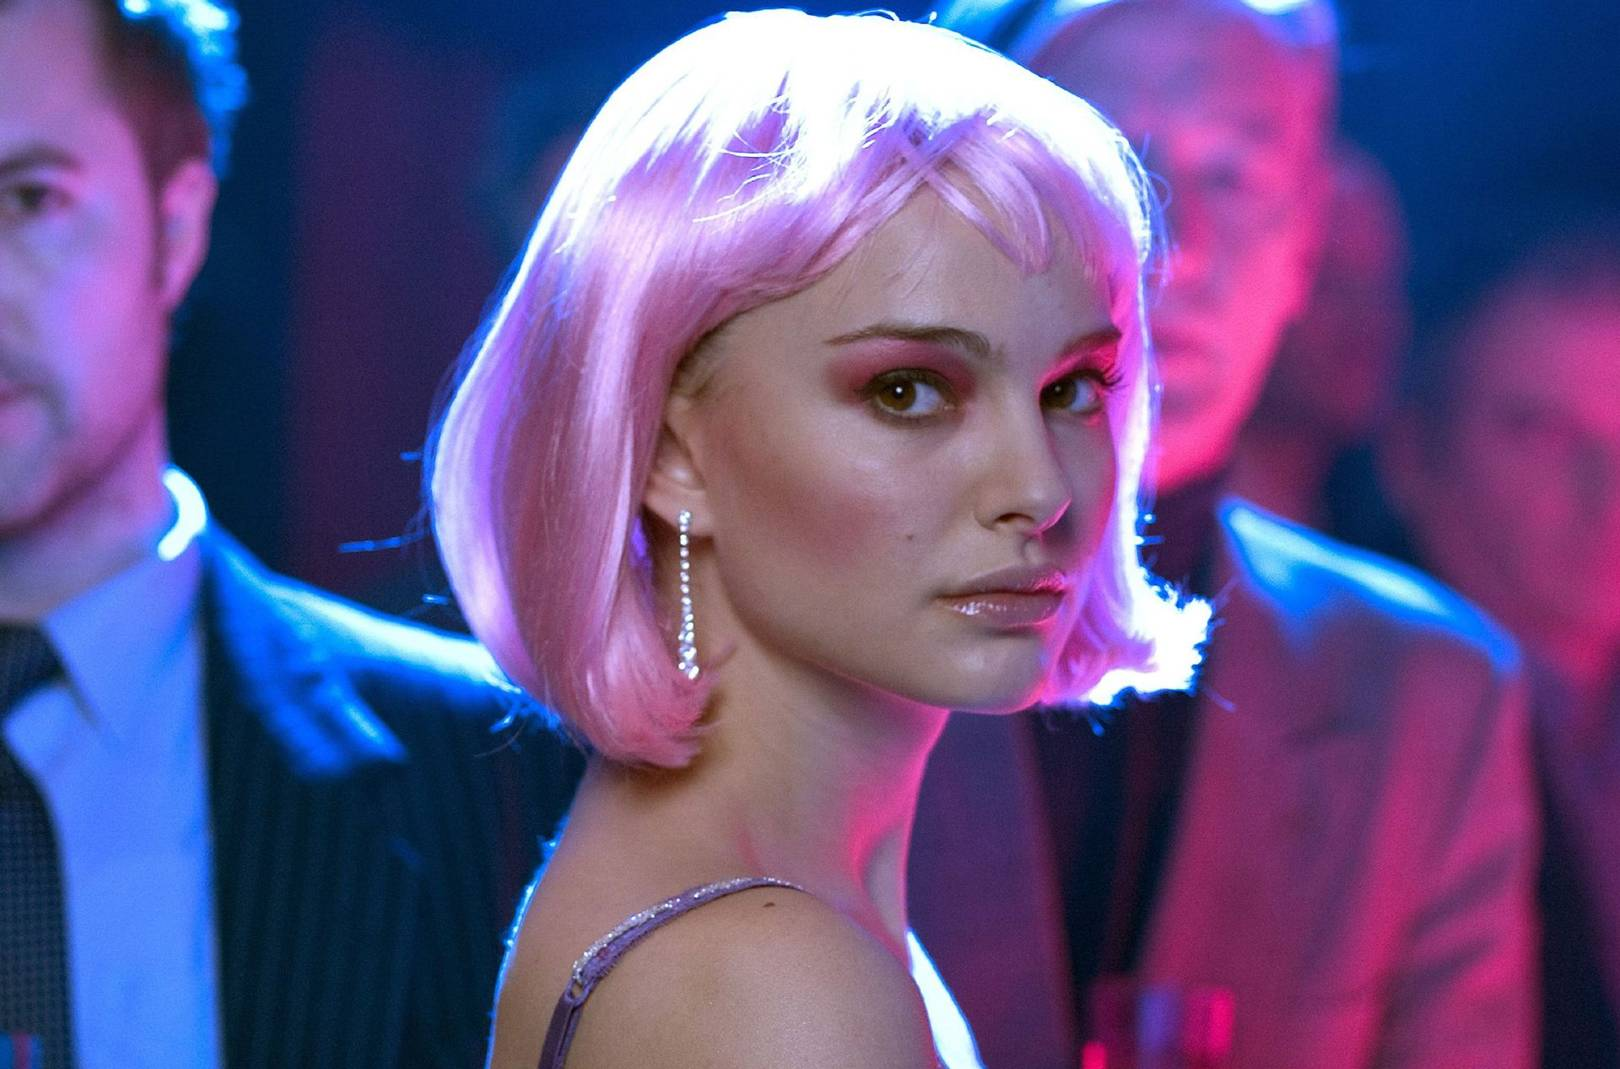 natalie-portman-closer-deleted-scene-areavids-college-blowjobtures